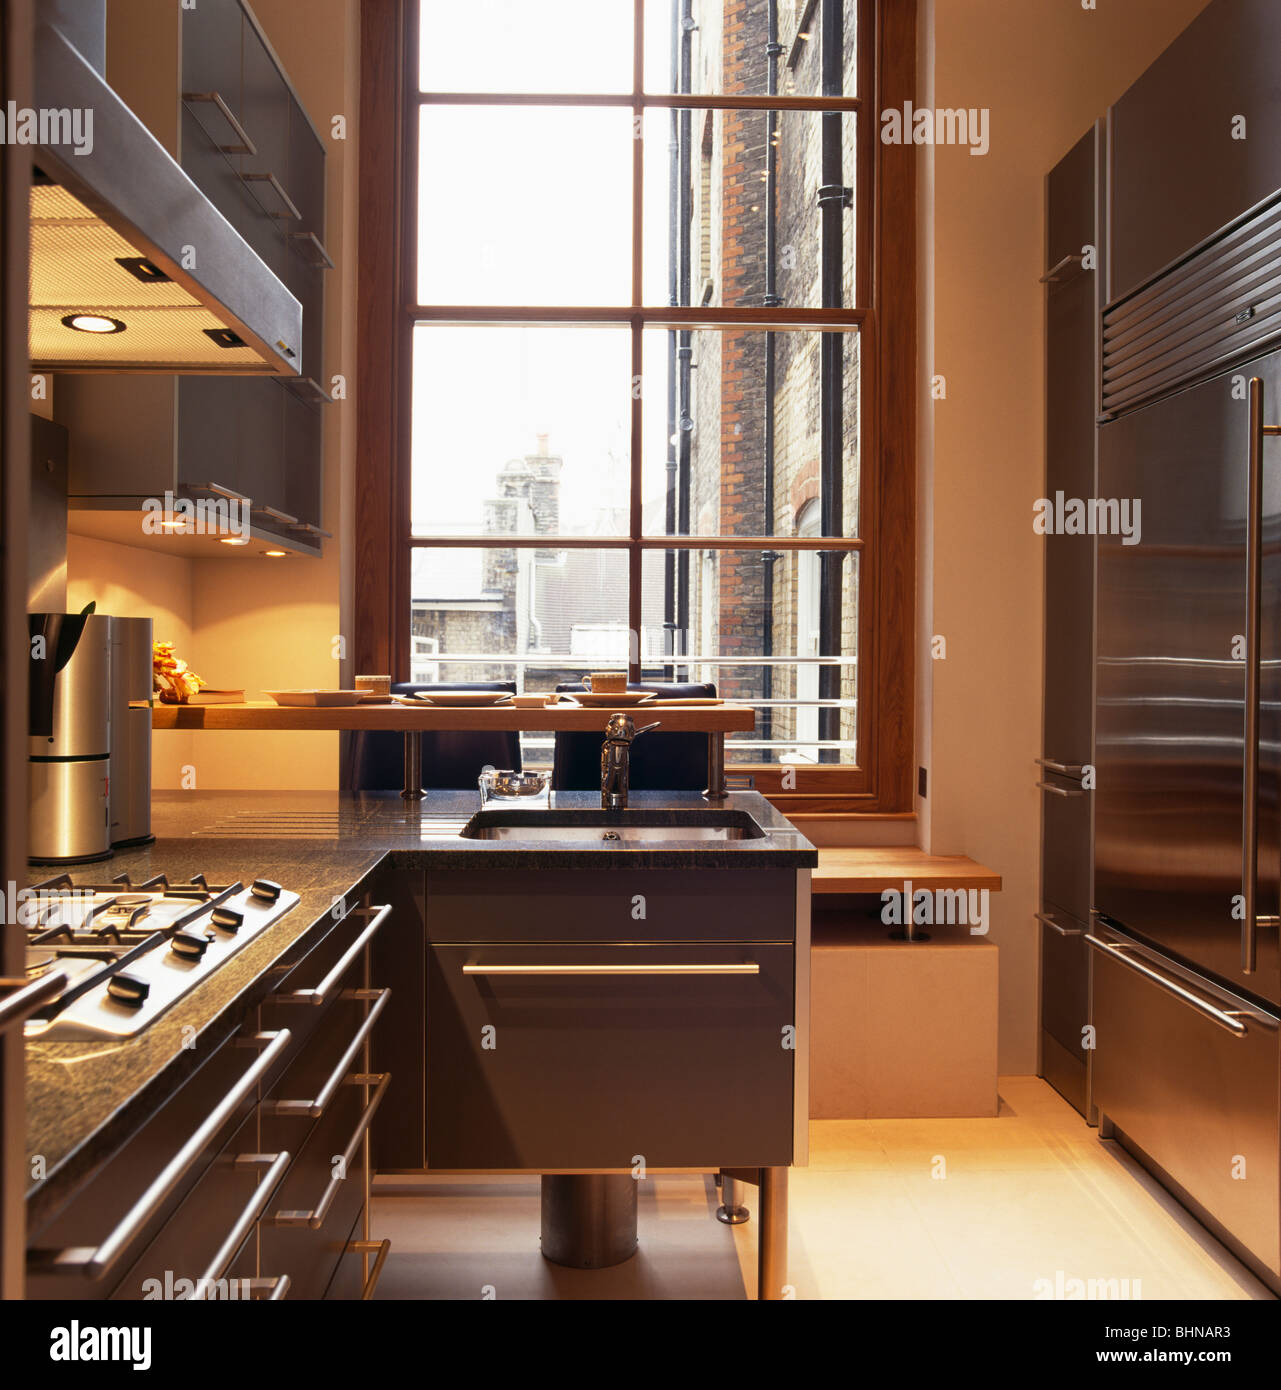 recessed lighting above oven in modern apartment kitchen with large window recessed82 large